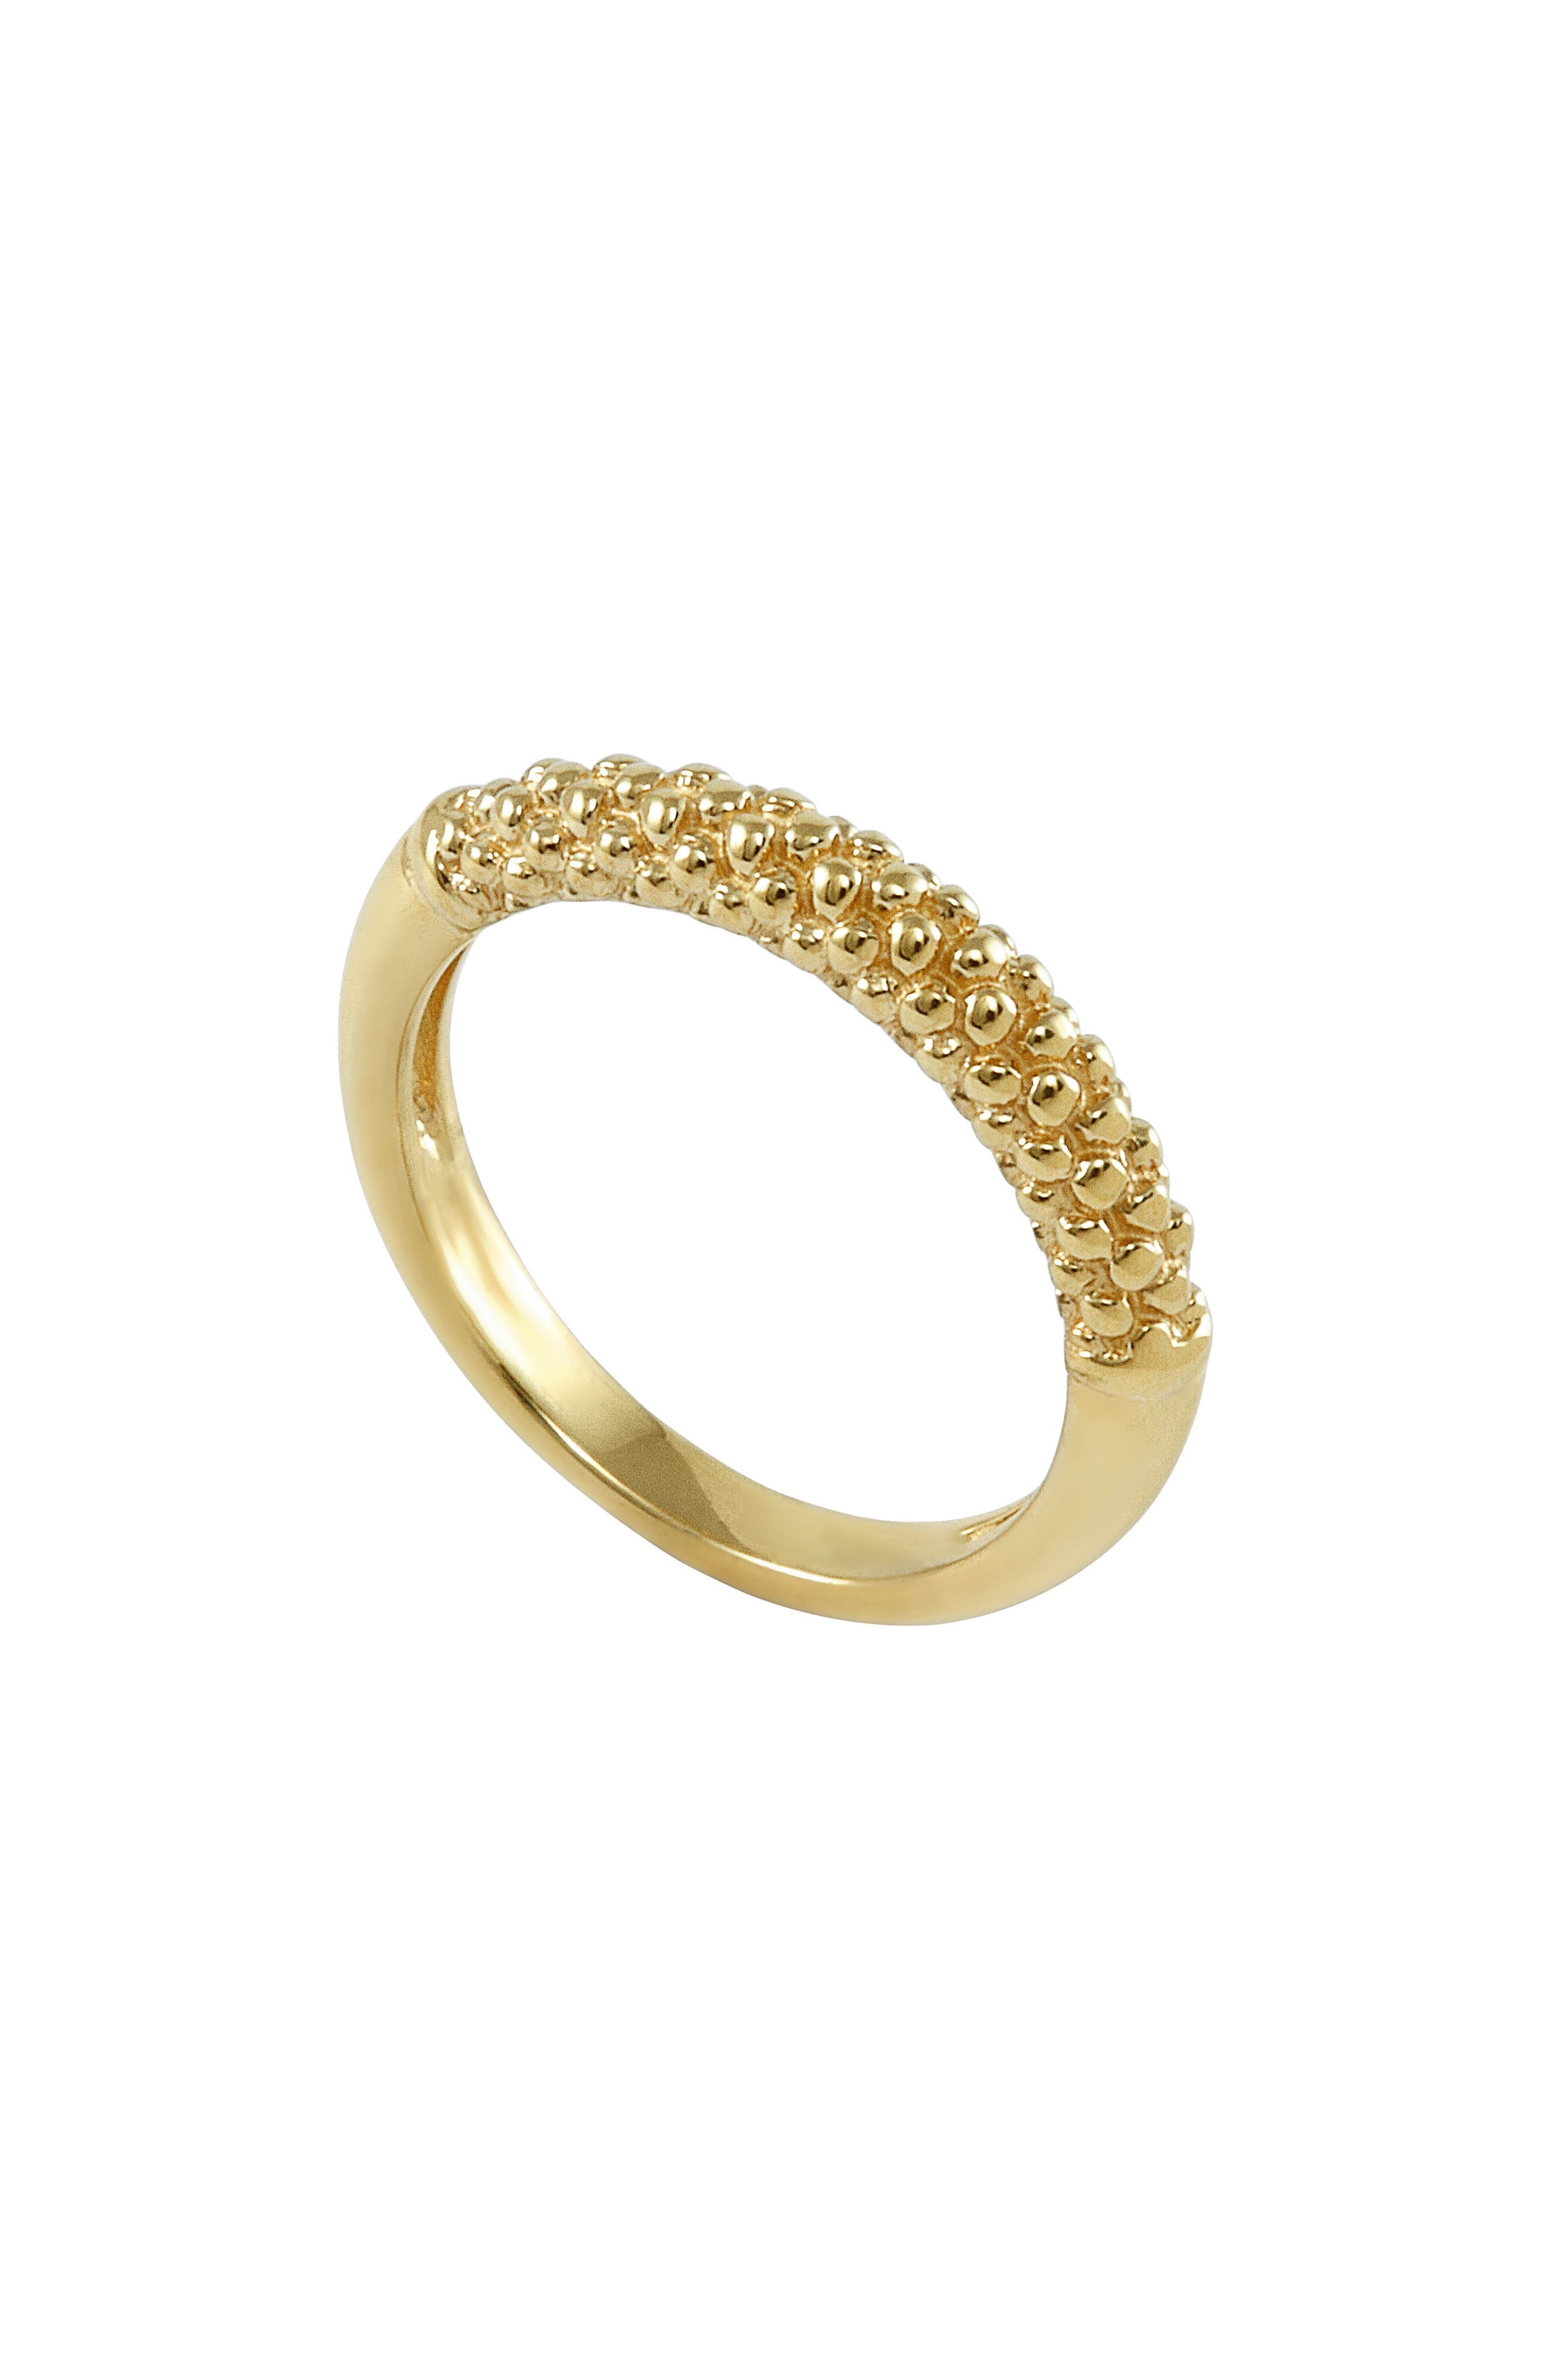 Caviar Band Ring,                             Main thumbnail 1, color,                             Gold